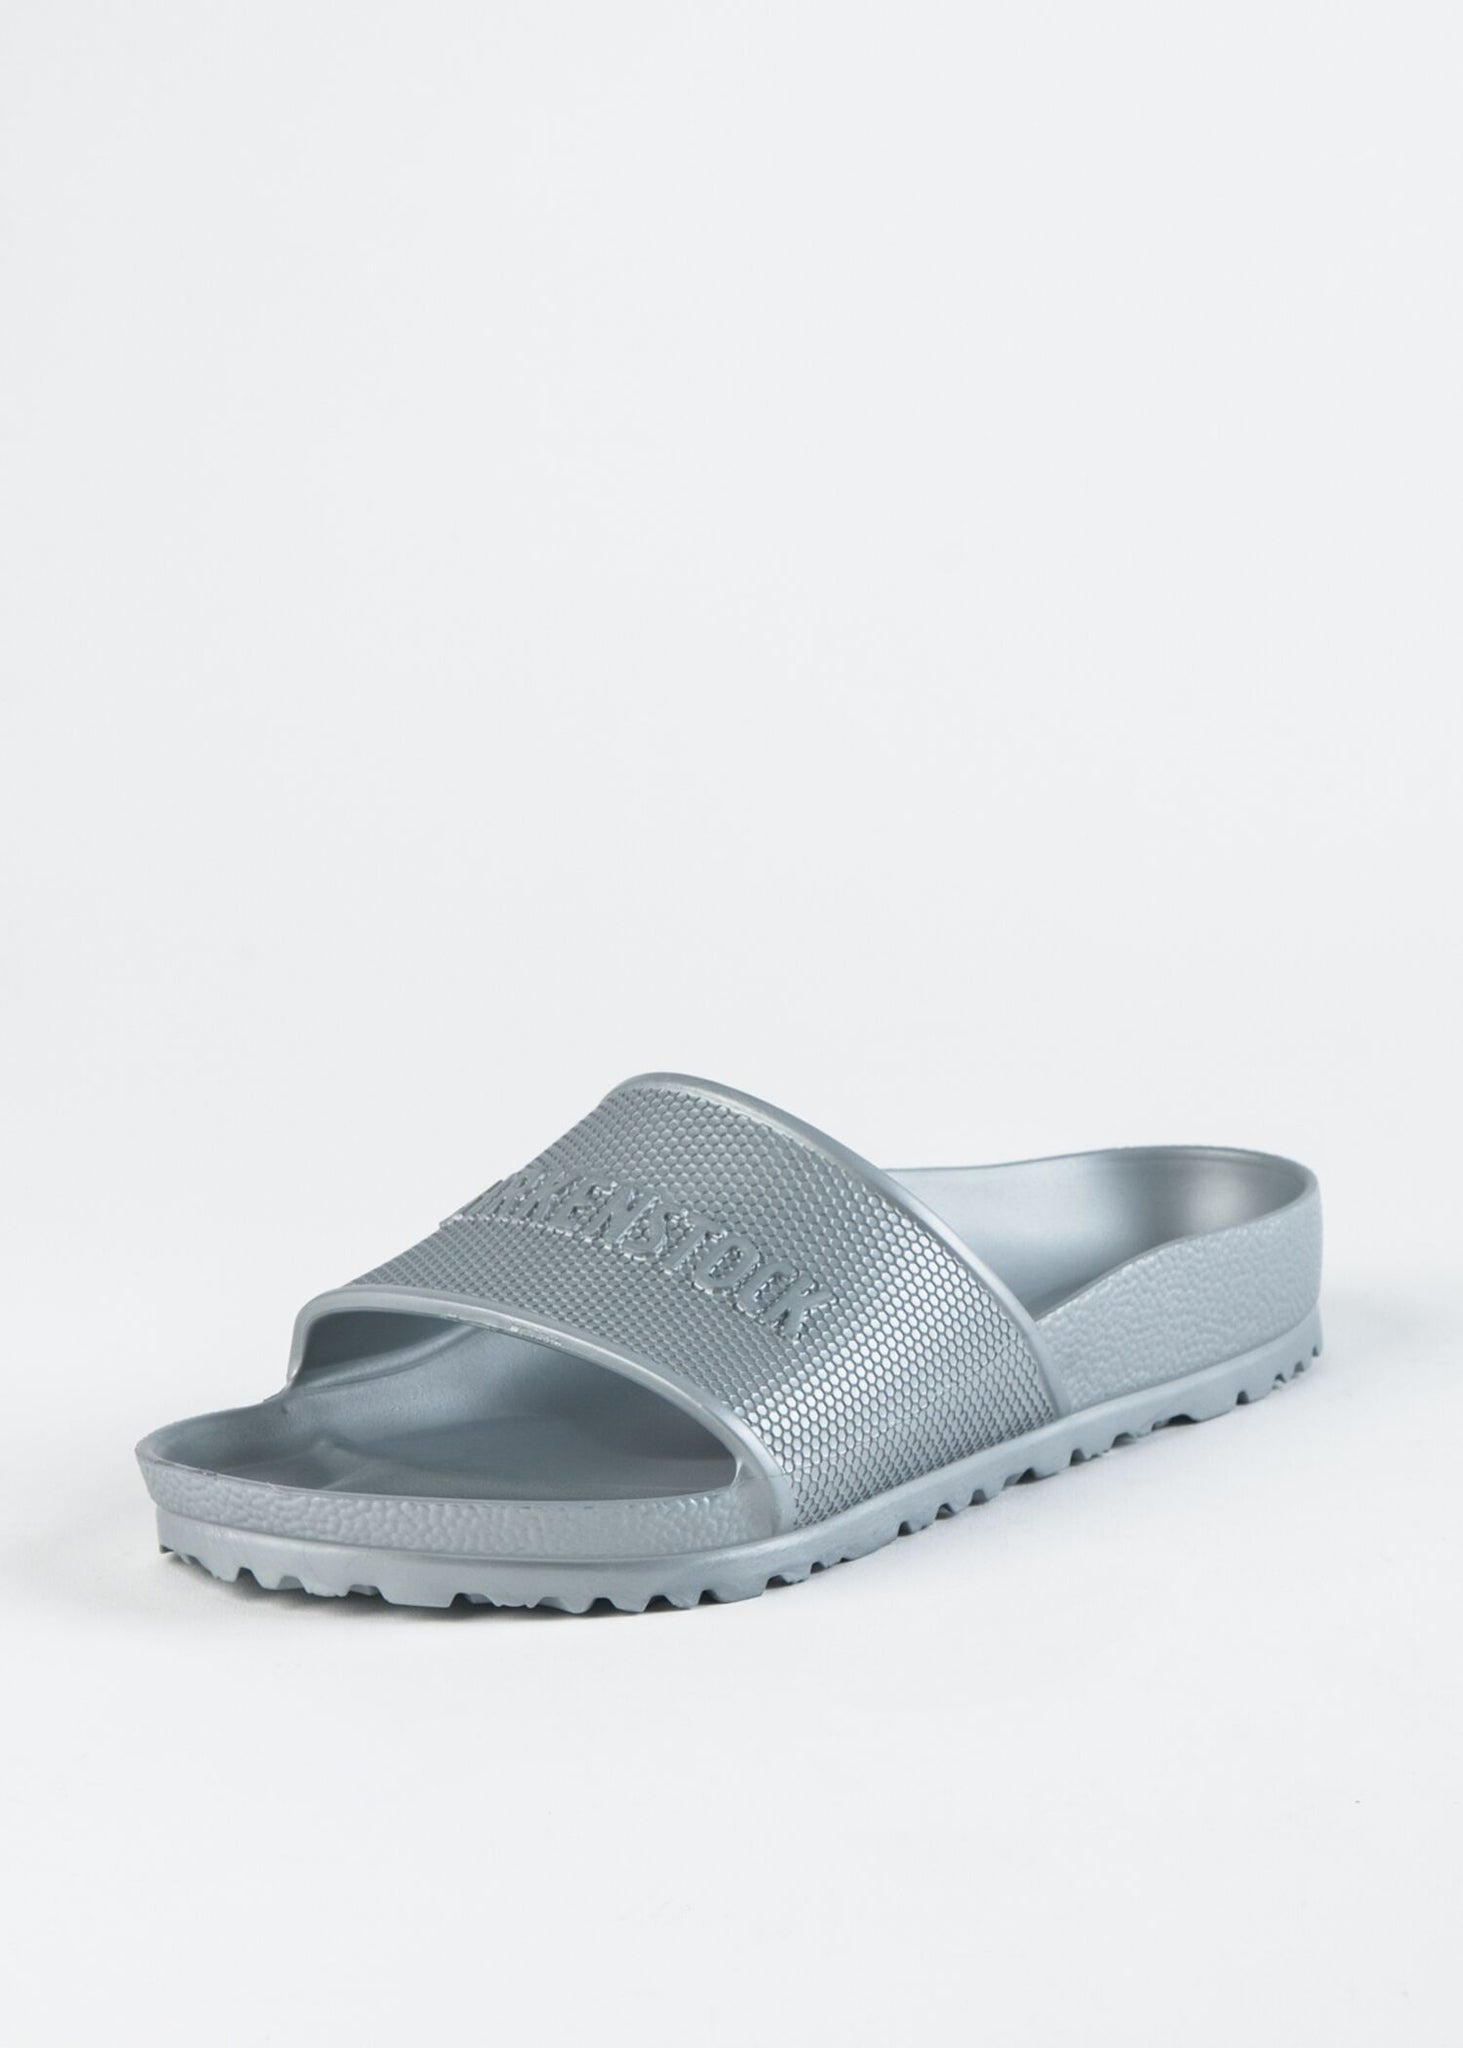 BARBADOS-EVA SINGLE STRAP SANDAL